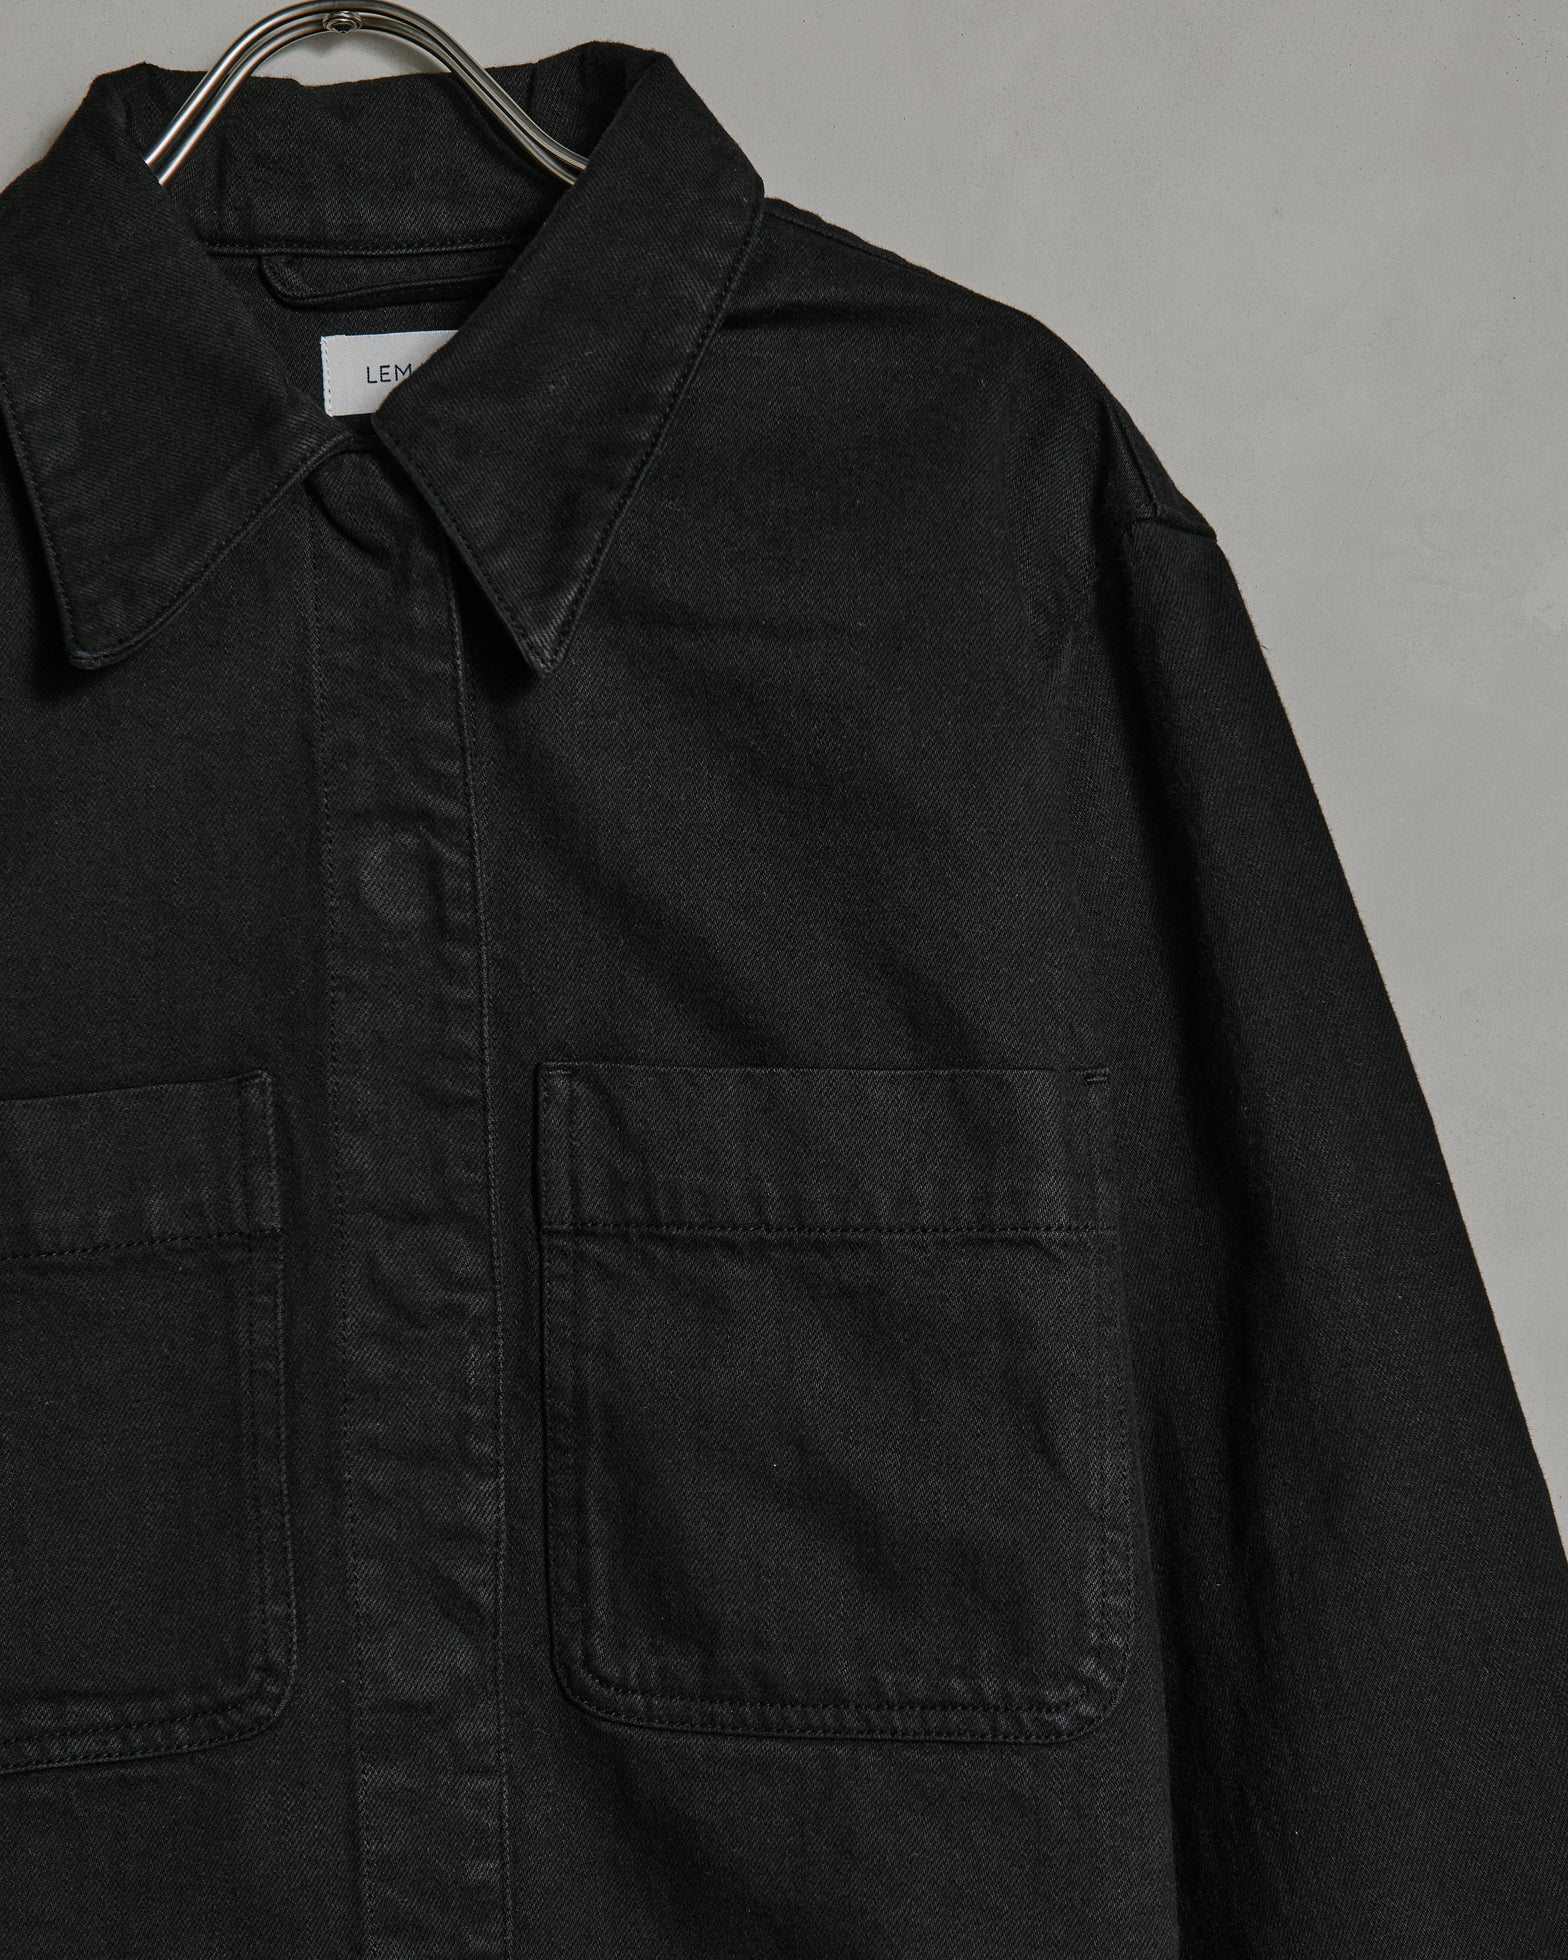 Overshirt in Black